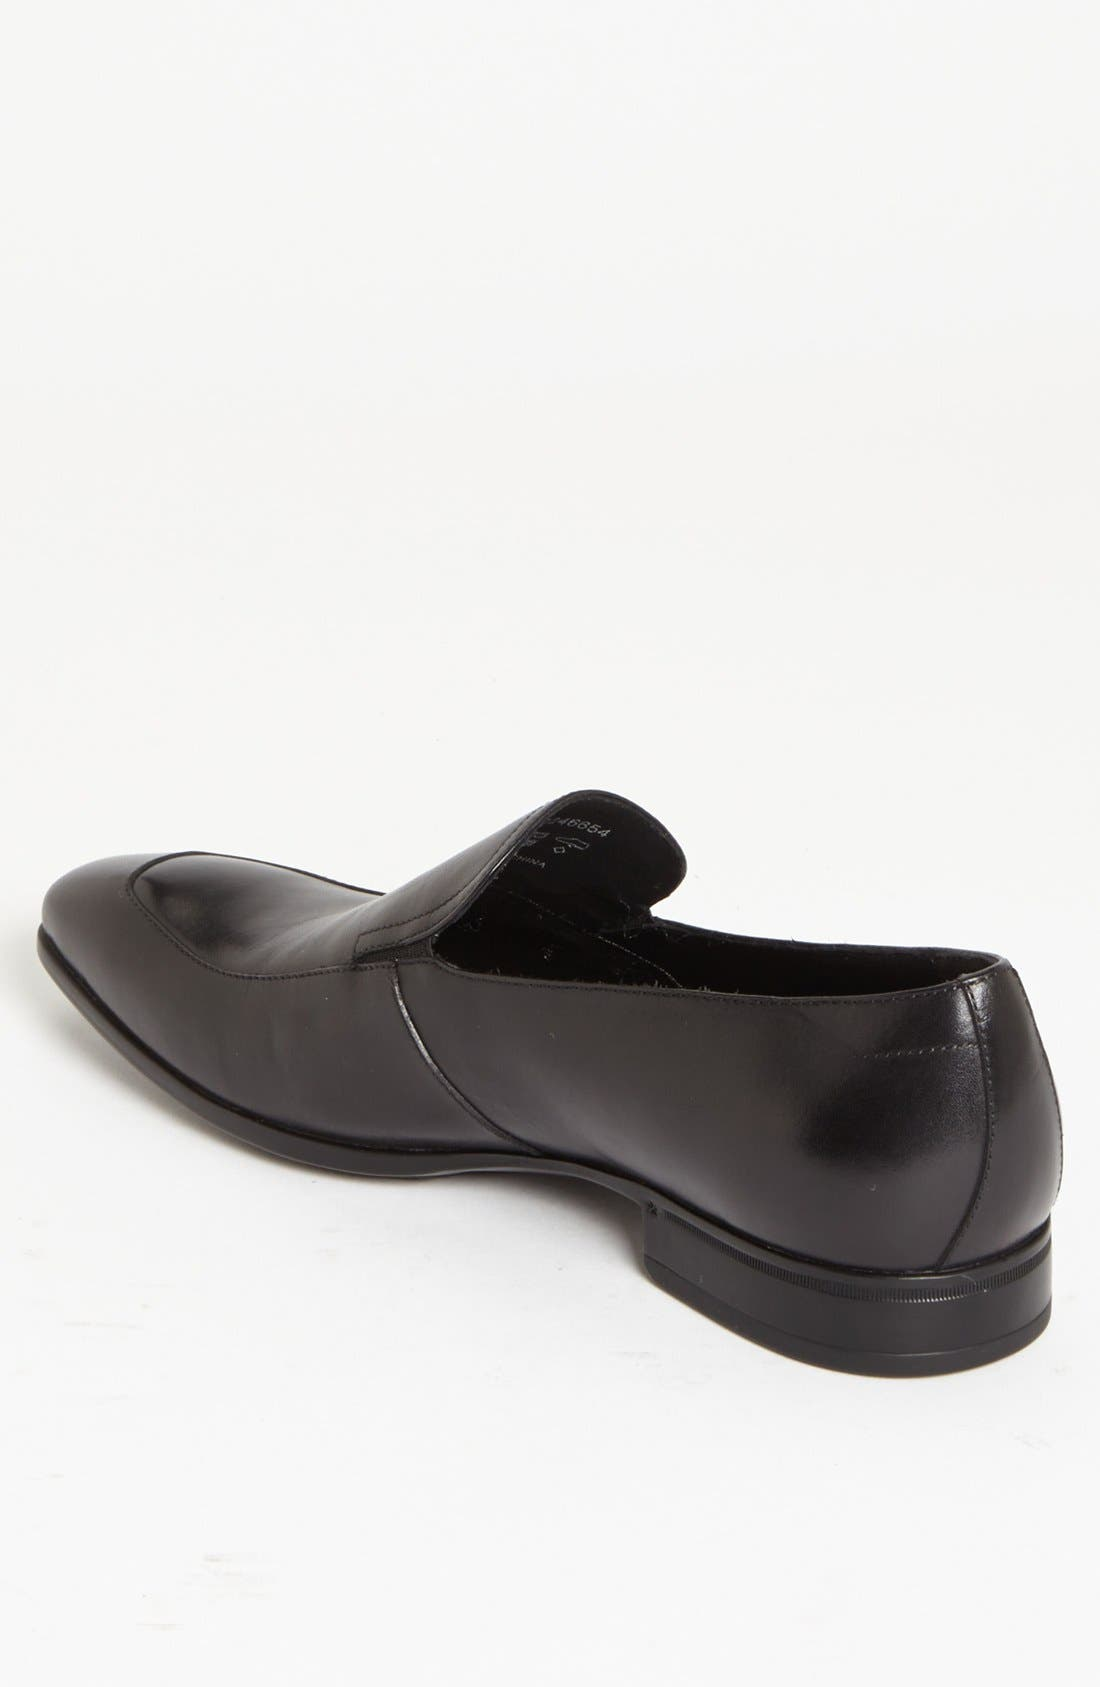 Alternate Image 2  - BOSS HUGO BOSS 'Varmons' Apron Toe Loafer (Men)